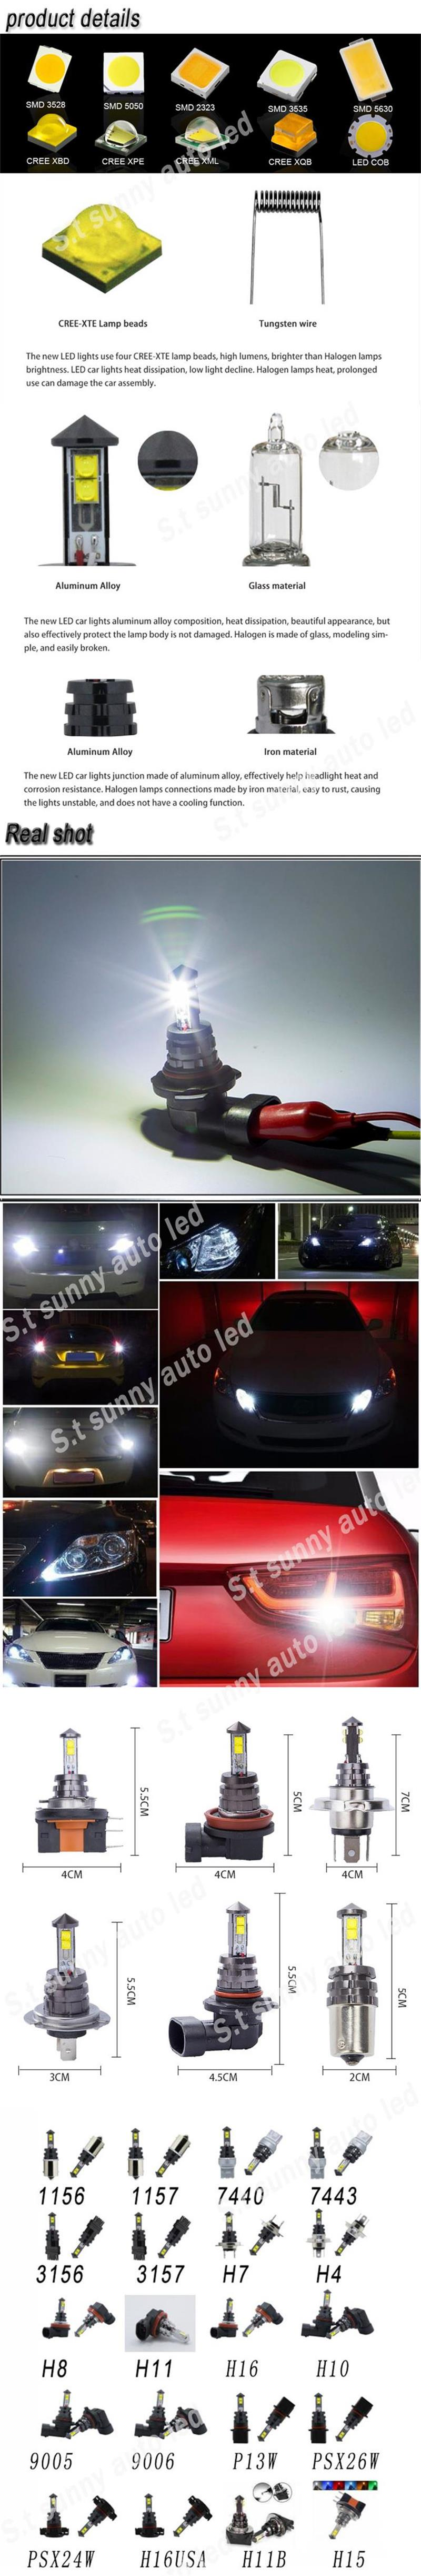 Yellow light bulb h4 xml2 u2 flashlight turbo led headlight hi lo xml t6